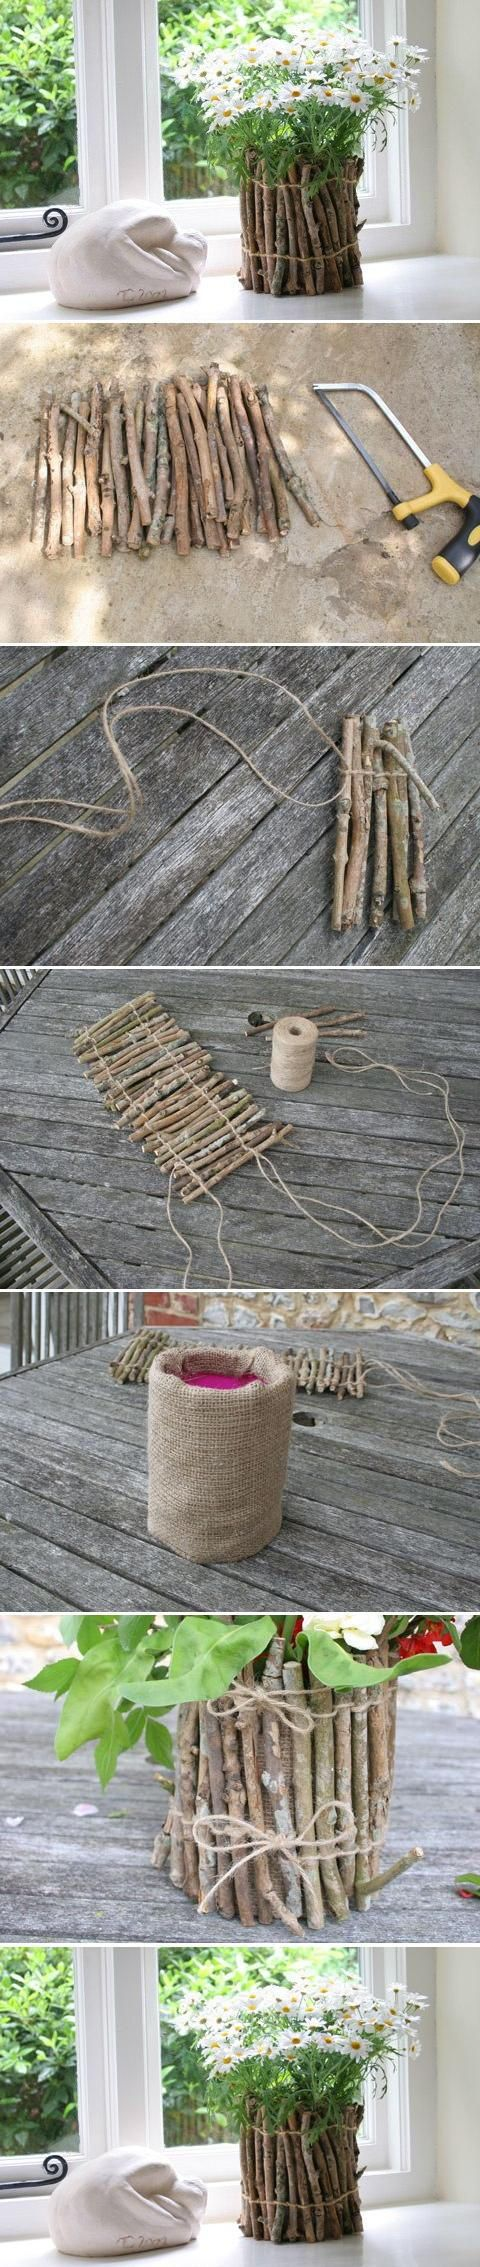 DIY Tree Branches Flower Pot DIY Projects